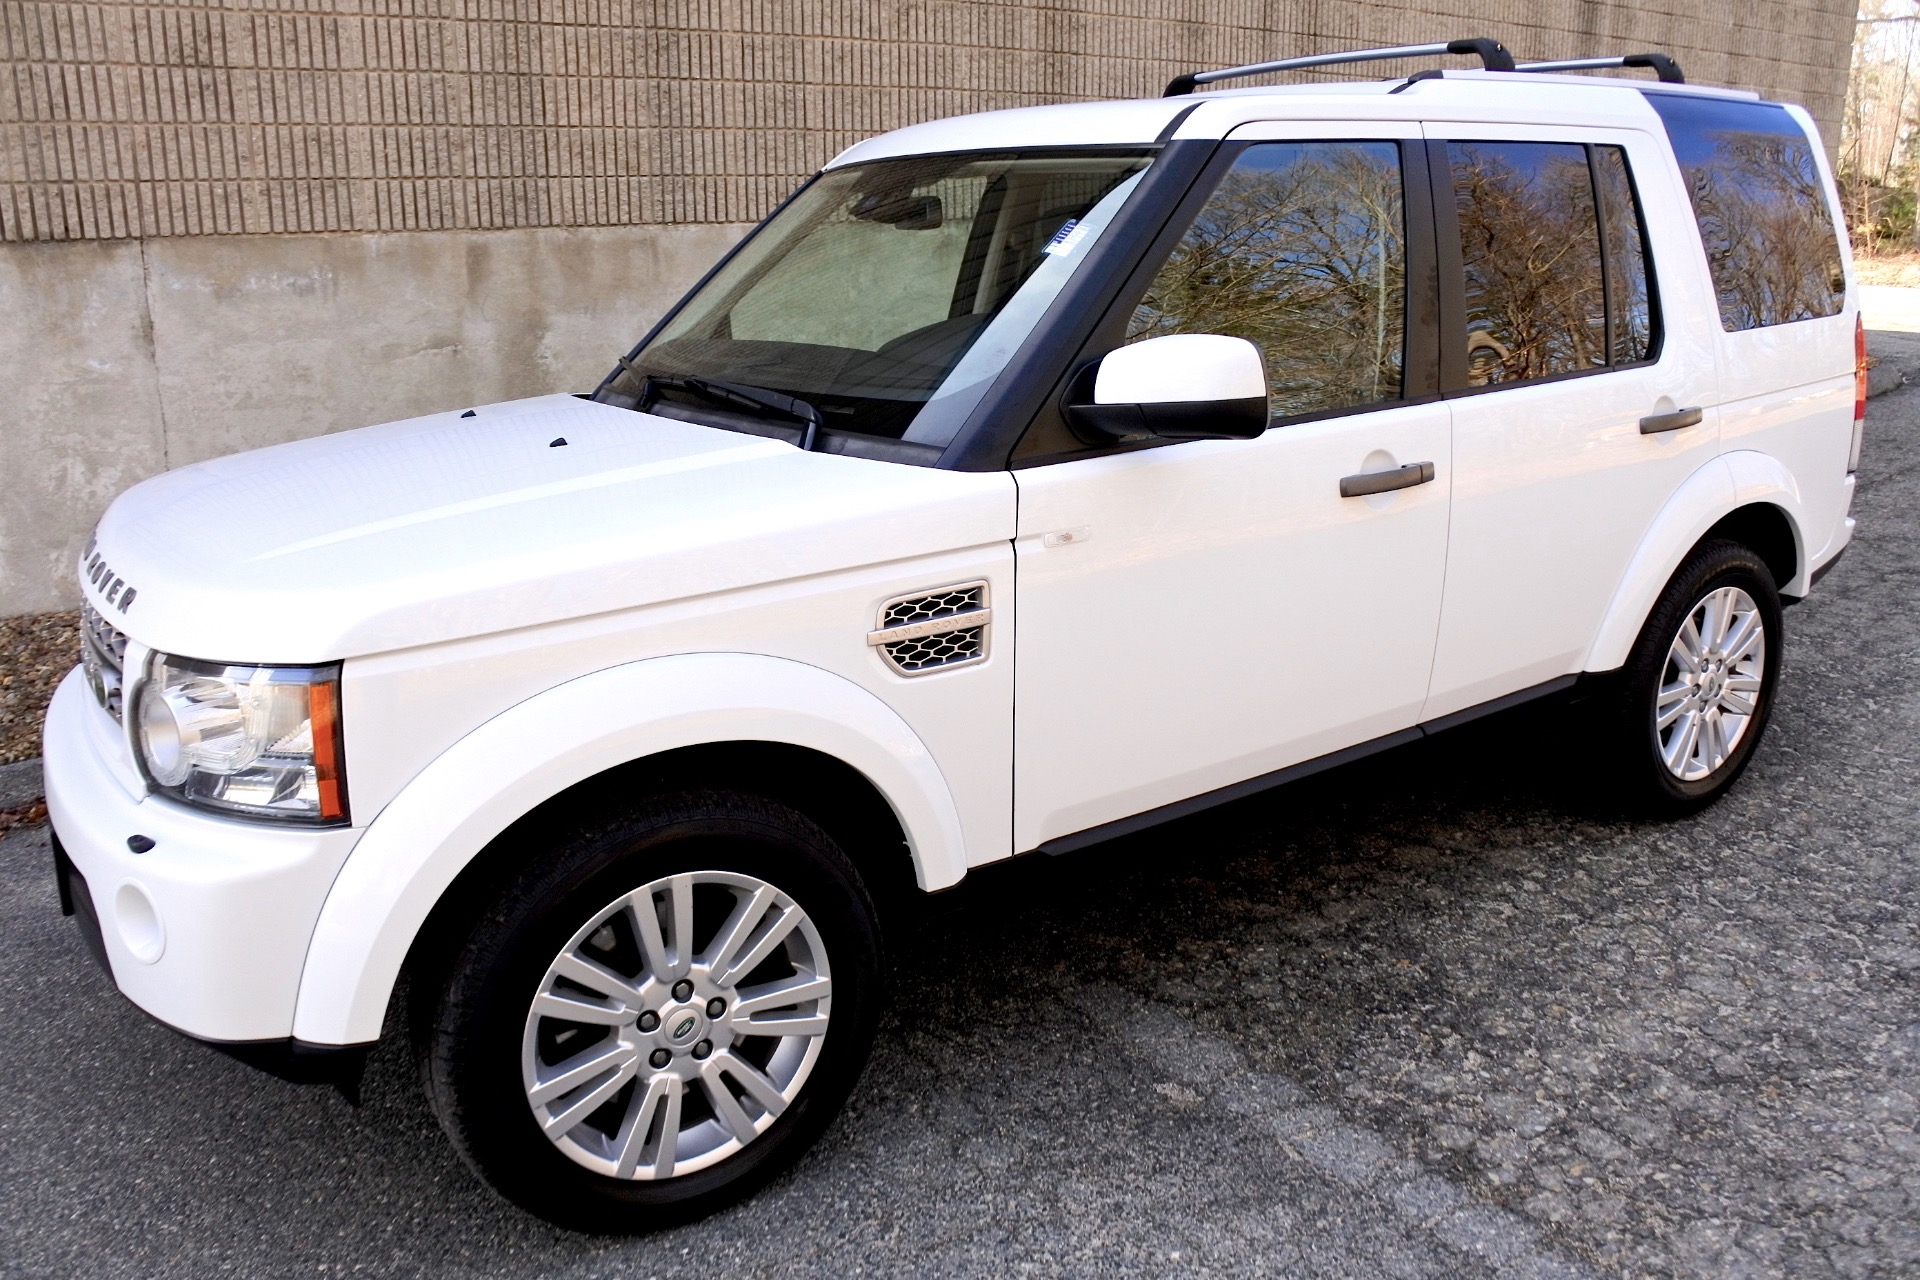 Used 2011 Land Rover Lr4 4WD 4dr V8 HSE Used 2011 Land Rover Lr4 4WD 4dr V8 HSE for sale  at Metro West Motorcars LLC in Shrewsbury MA 1